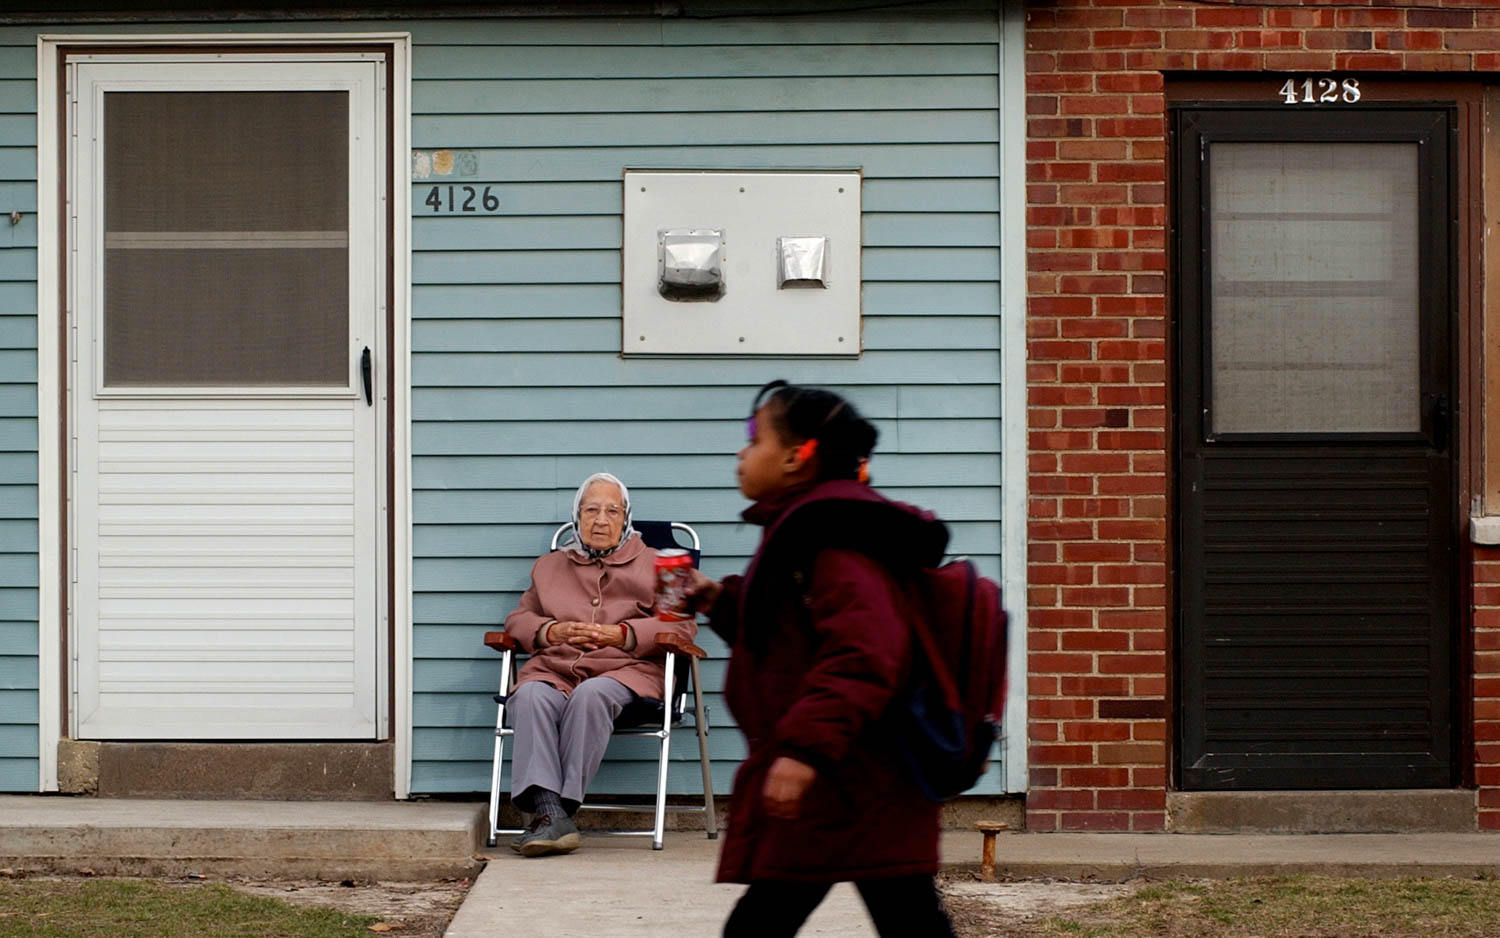 90-year-old Esther Funk of Moline watches the children come home from school Wednesday afternoon while she sitting outside her apartment in Springbrook Courts. Funk has lived in the public housing complex for 50-years. When the weather is nice she says she can usually be found outside enjoying the view from her front stoop. (Todd Mizener - Dispatch/Argus)